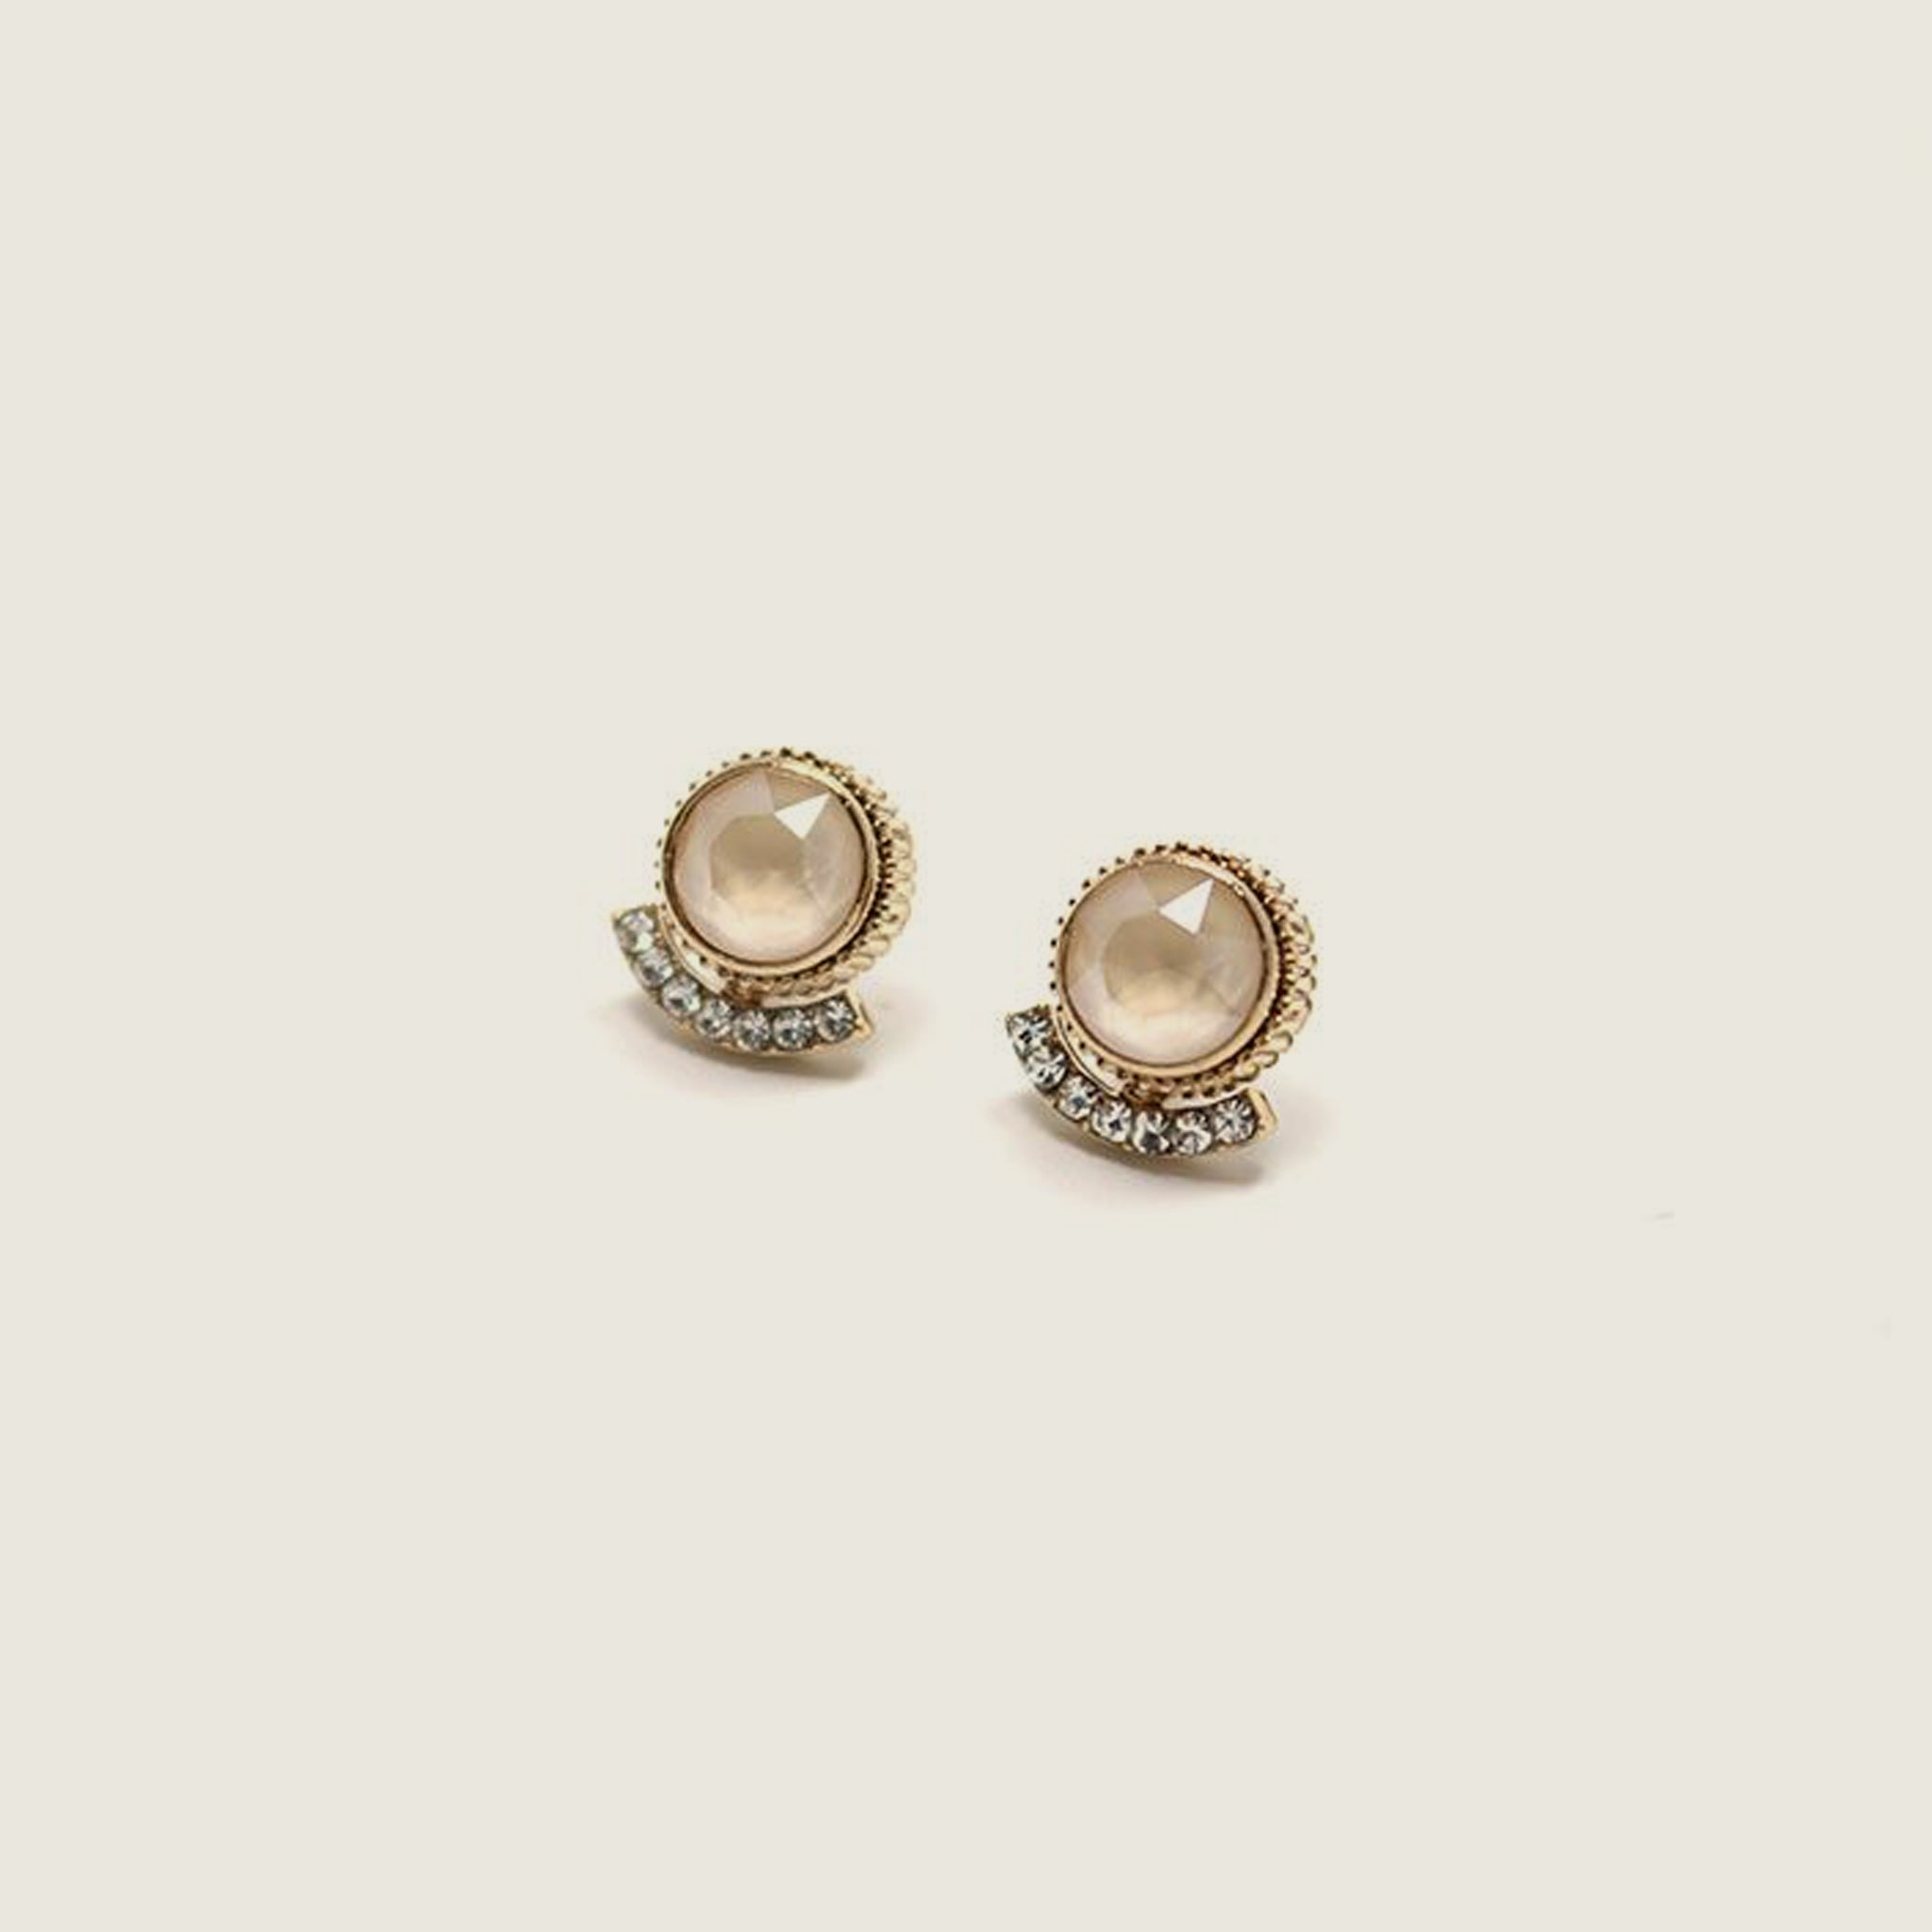 Mimosa Post Earrings - Champagne